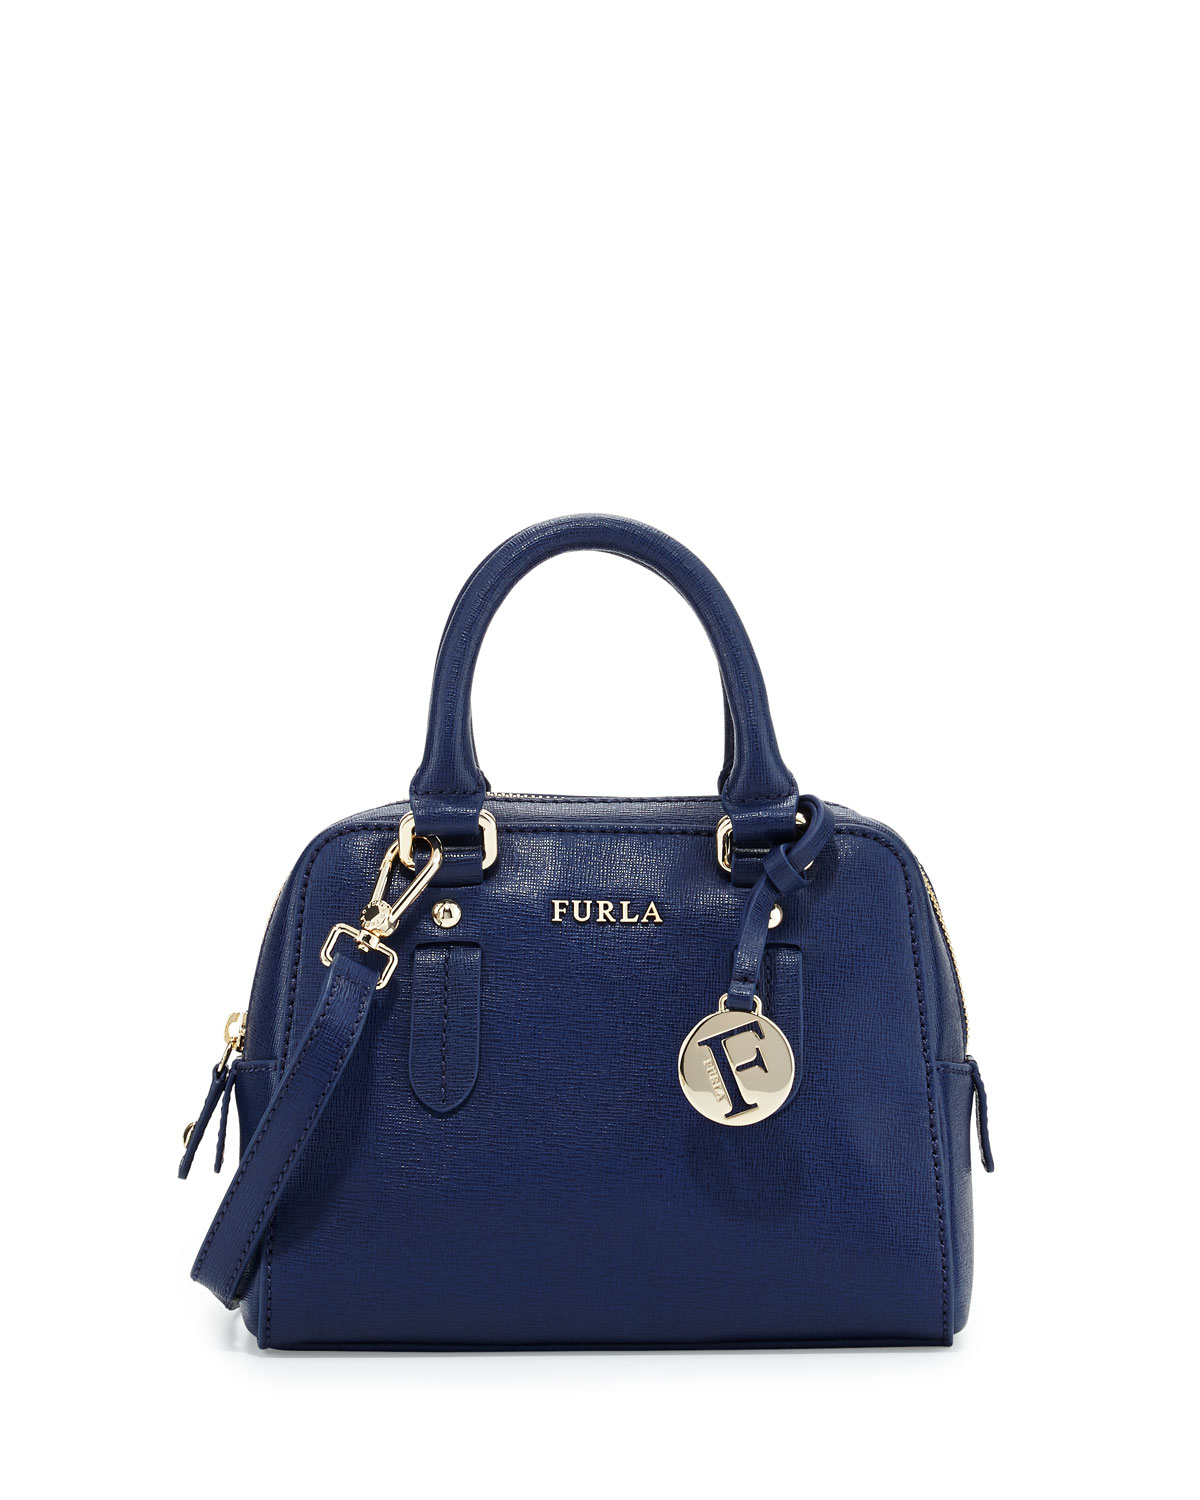 Furla Elena Mini Leather Satchel Bag in Blue | Lyst